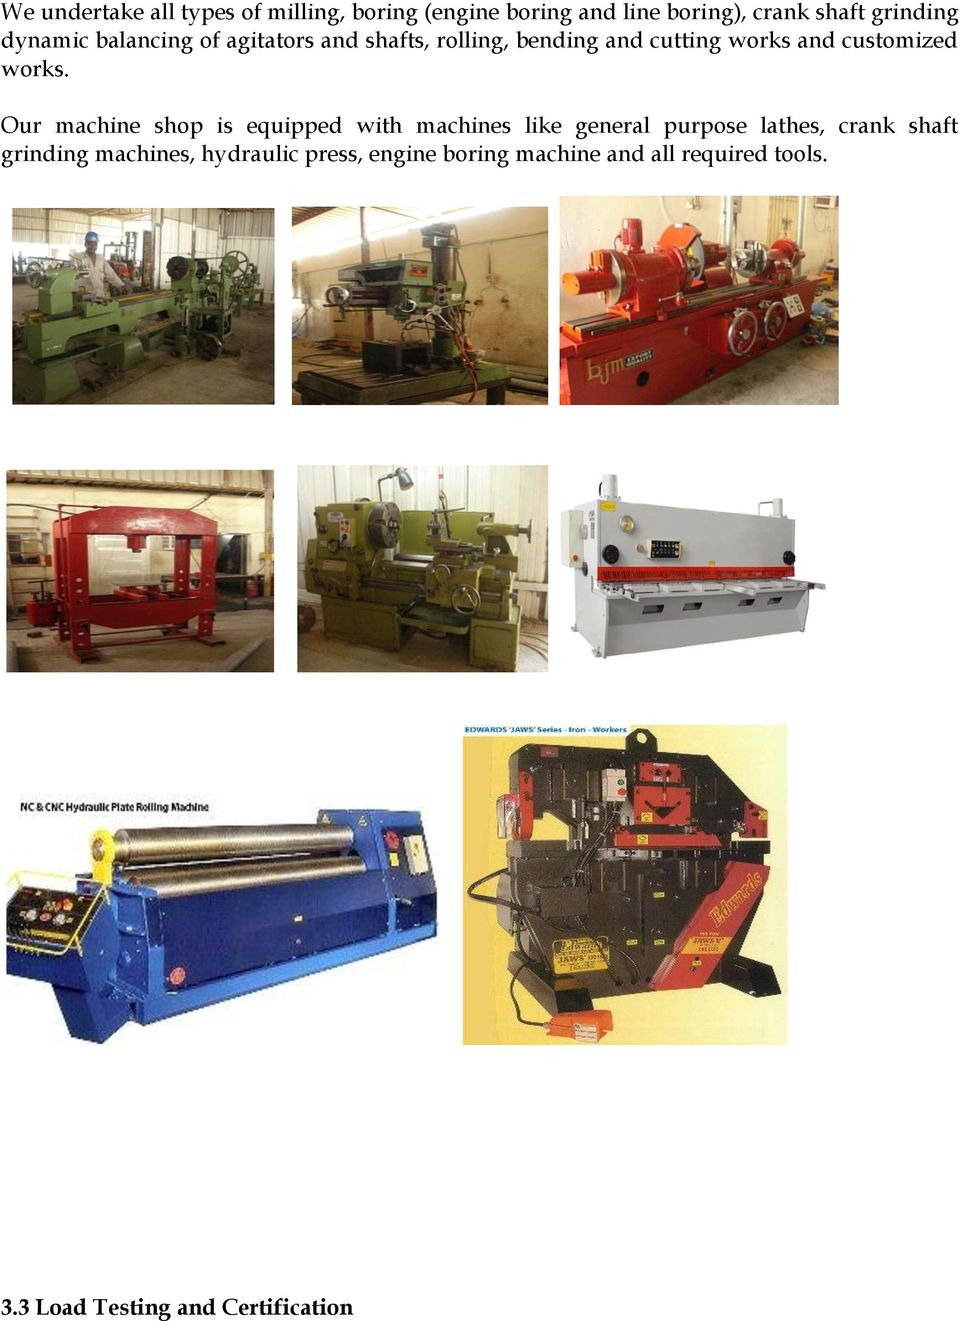 Our machine shop is equipped with machines like general purpose lathes, crank shaft grinding